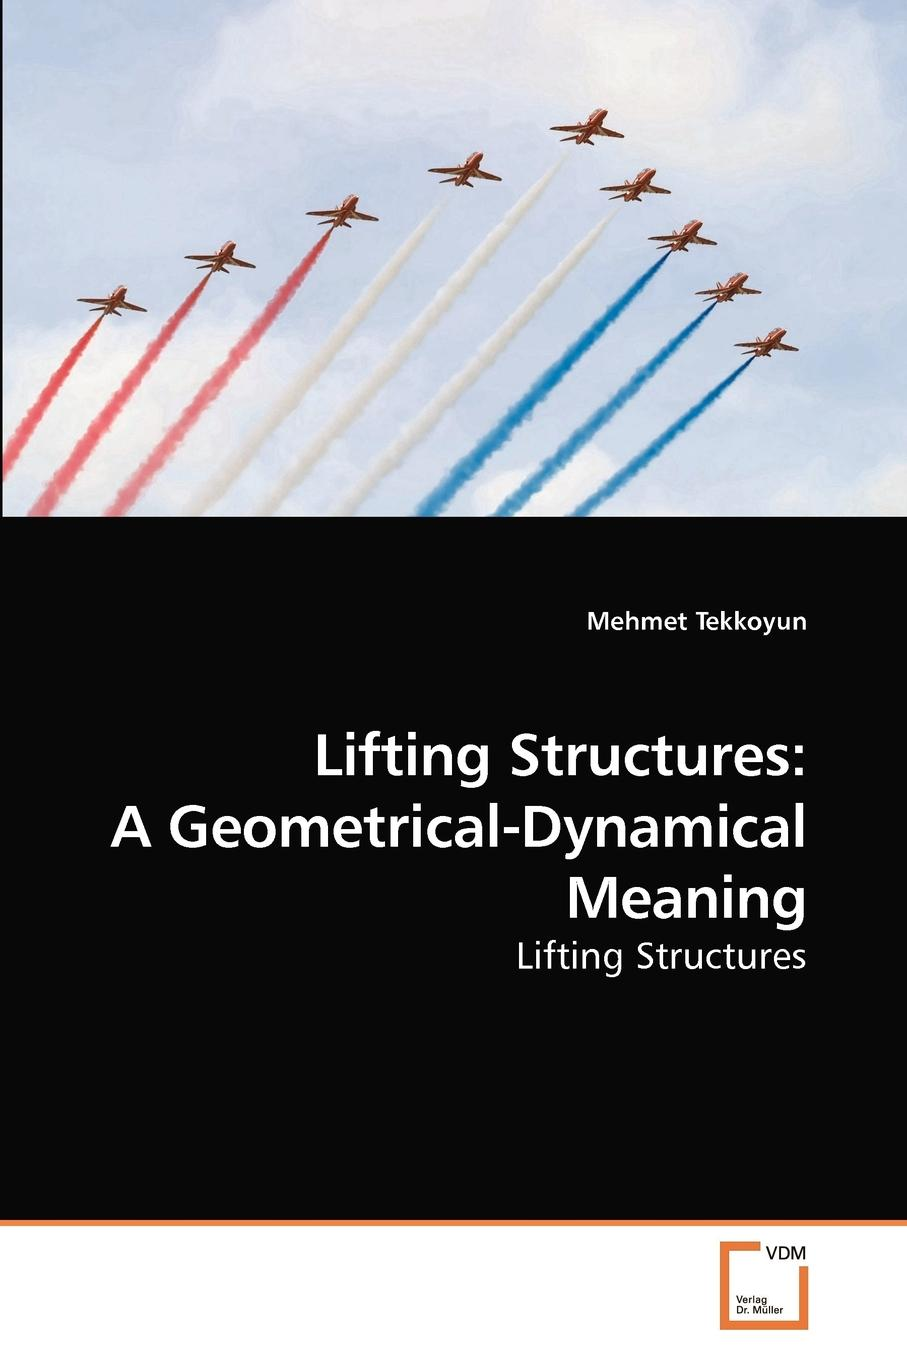 Mehmet Tekkoyun Lifting Structures. A Geometrical-Dynamical Meaning yasuhide shindo electromagneto mechanics of material systems and structures